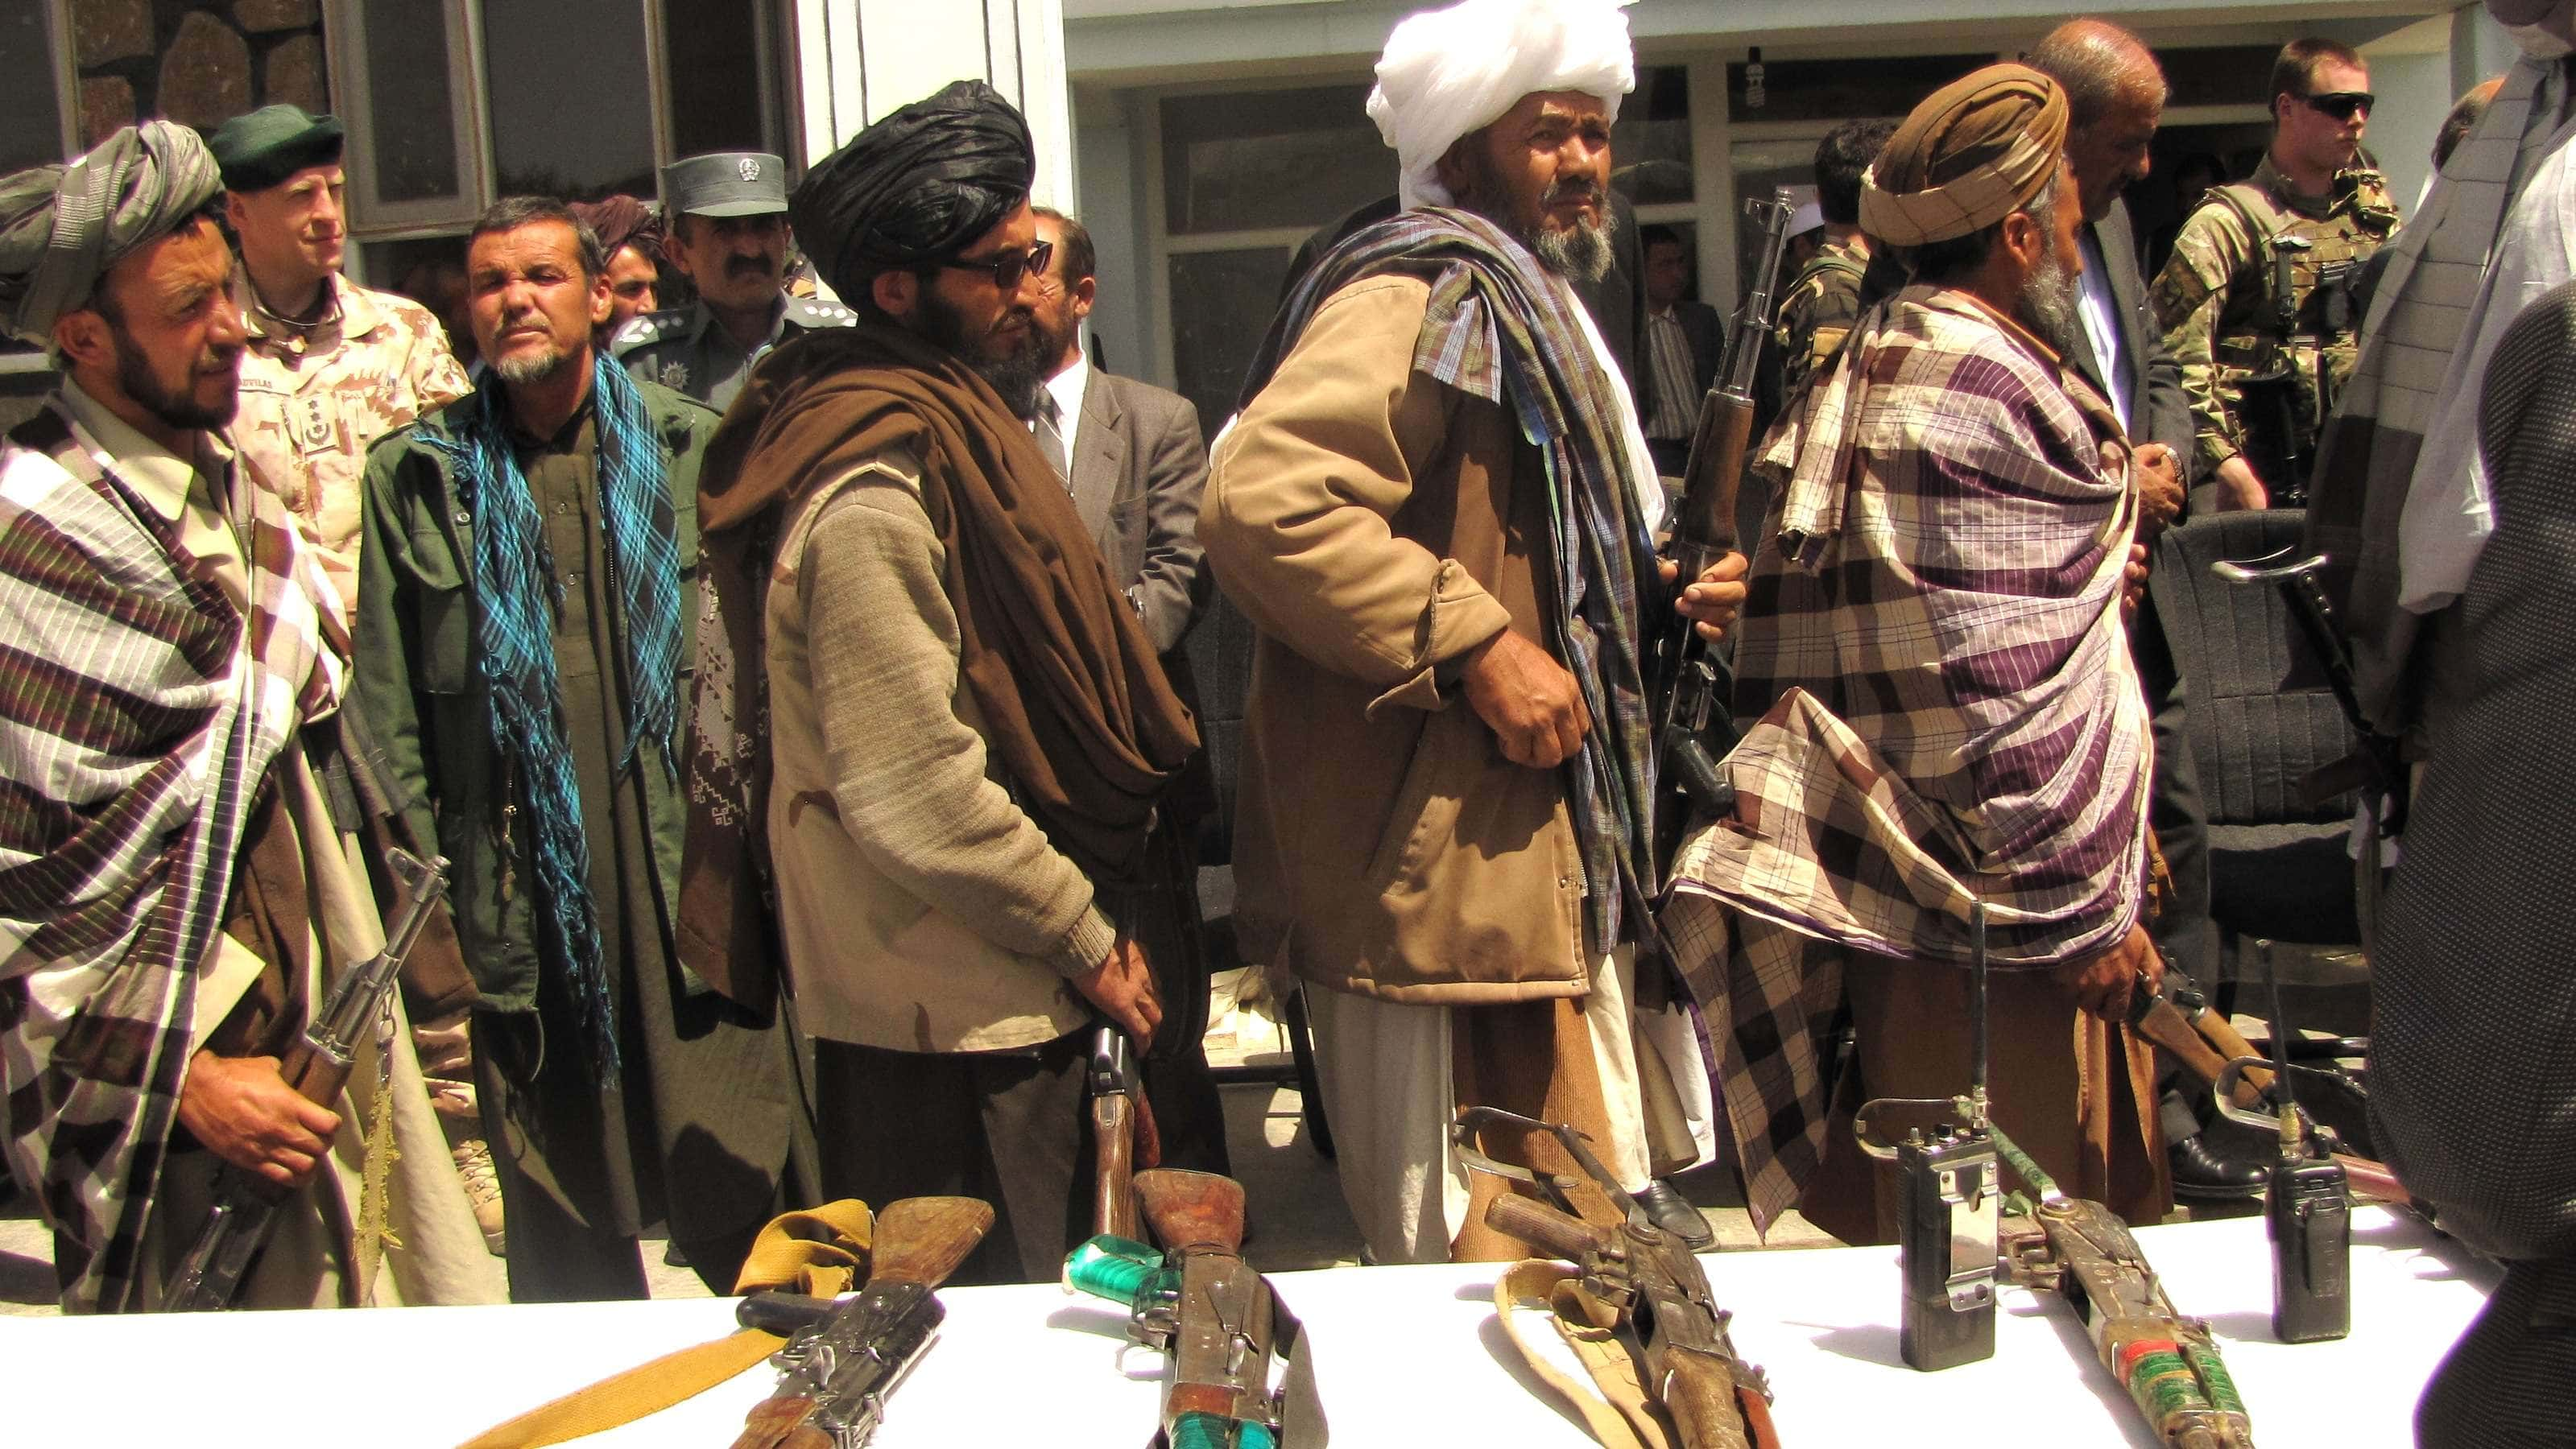 Former Taliban fighters line up to hand over weapons to the Afghan government during a reintegration ceremony in the Ghor province on May 28, 2012. (Image Credit: U.S. Department of Defense/Lt. Joe Painter)